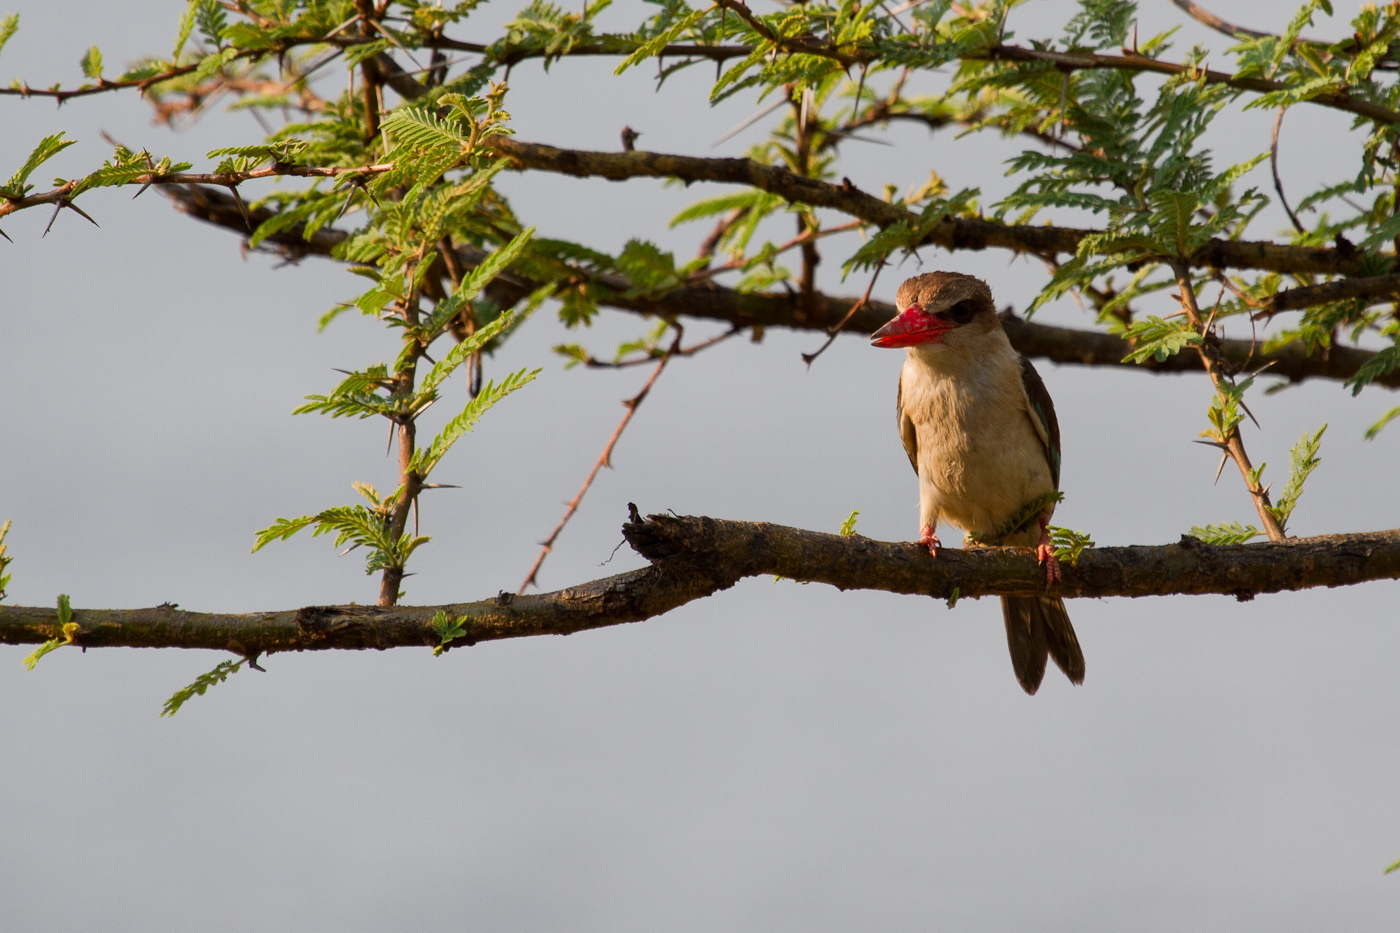 Brown-Hooded Kingfisher, Chobe River, Botswana, Oct. 2013